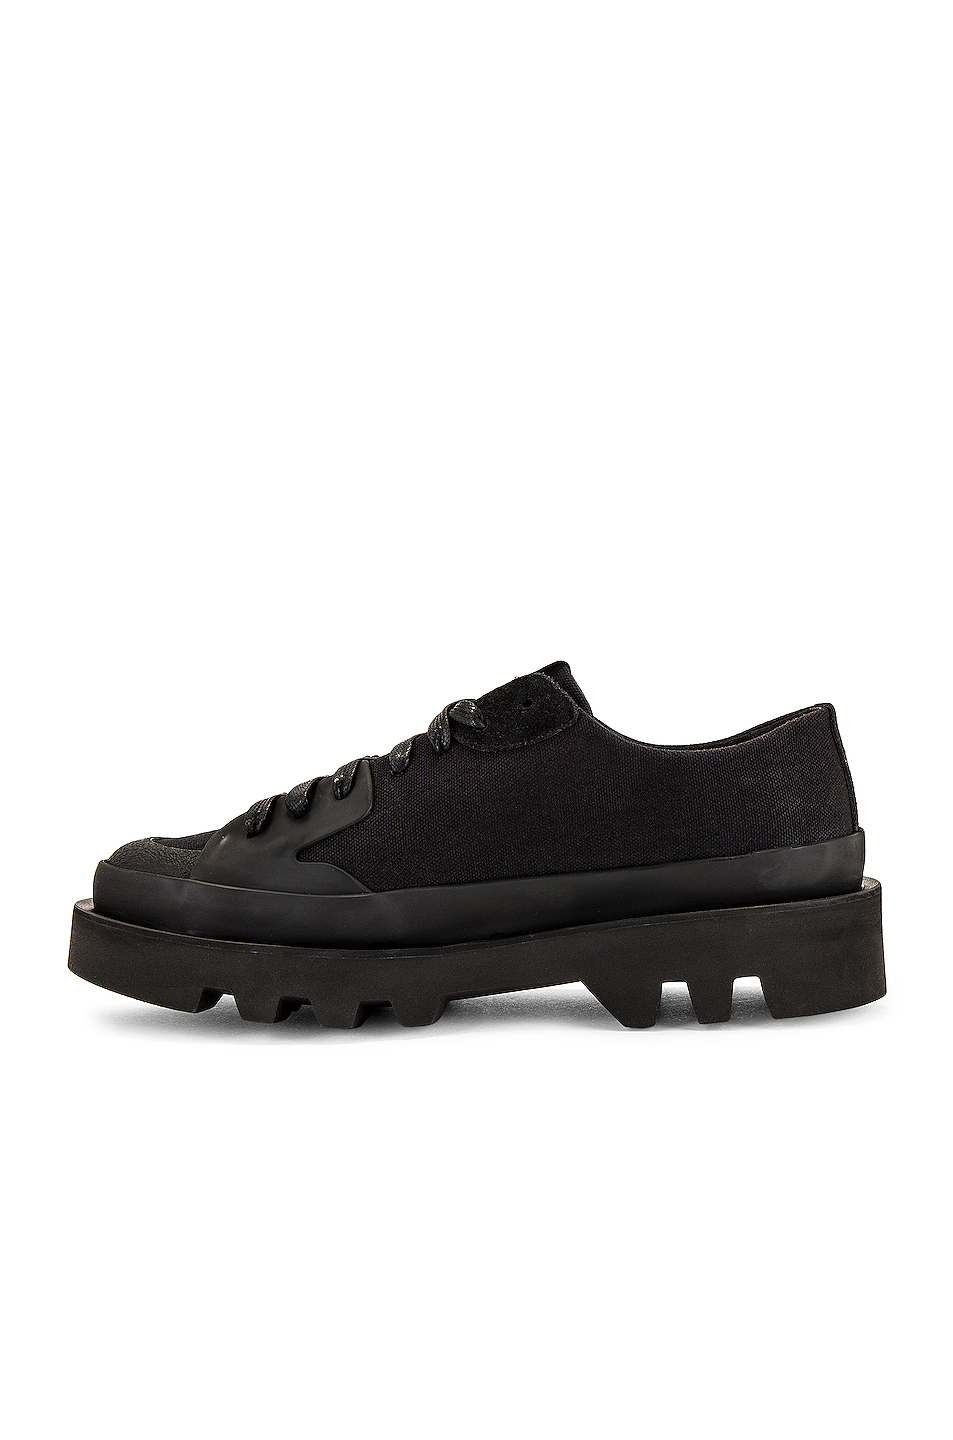 Givenchy Clapham Low Top Shoe